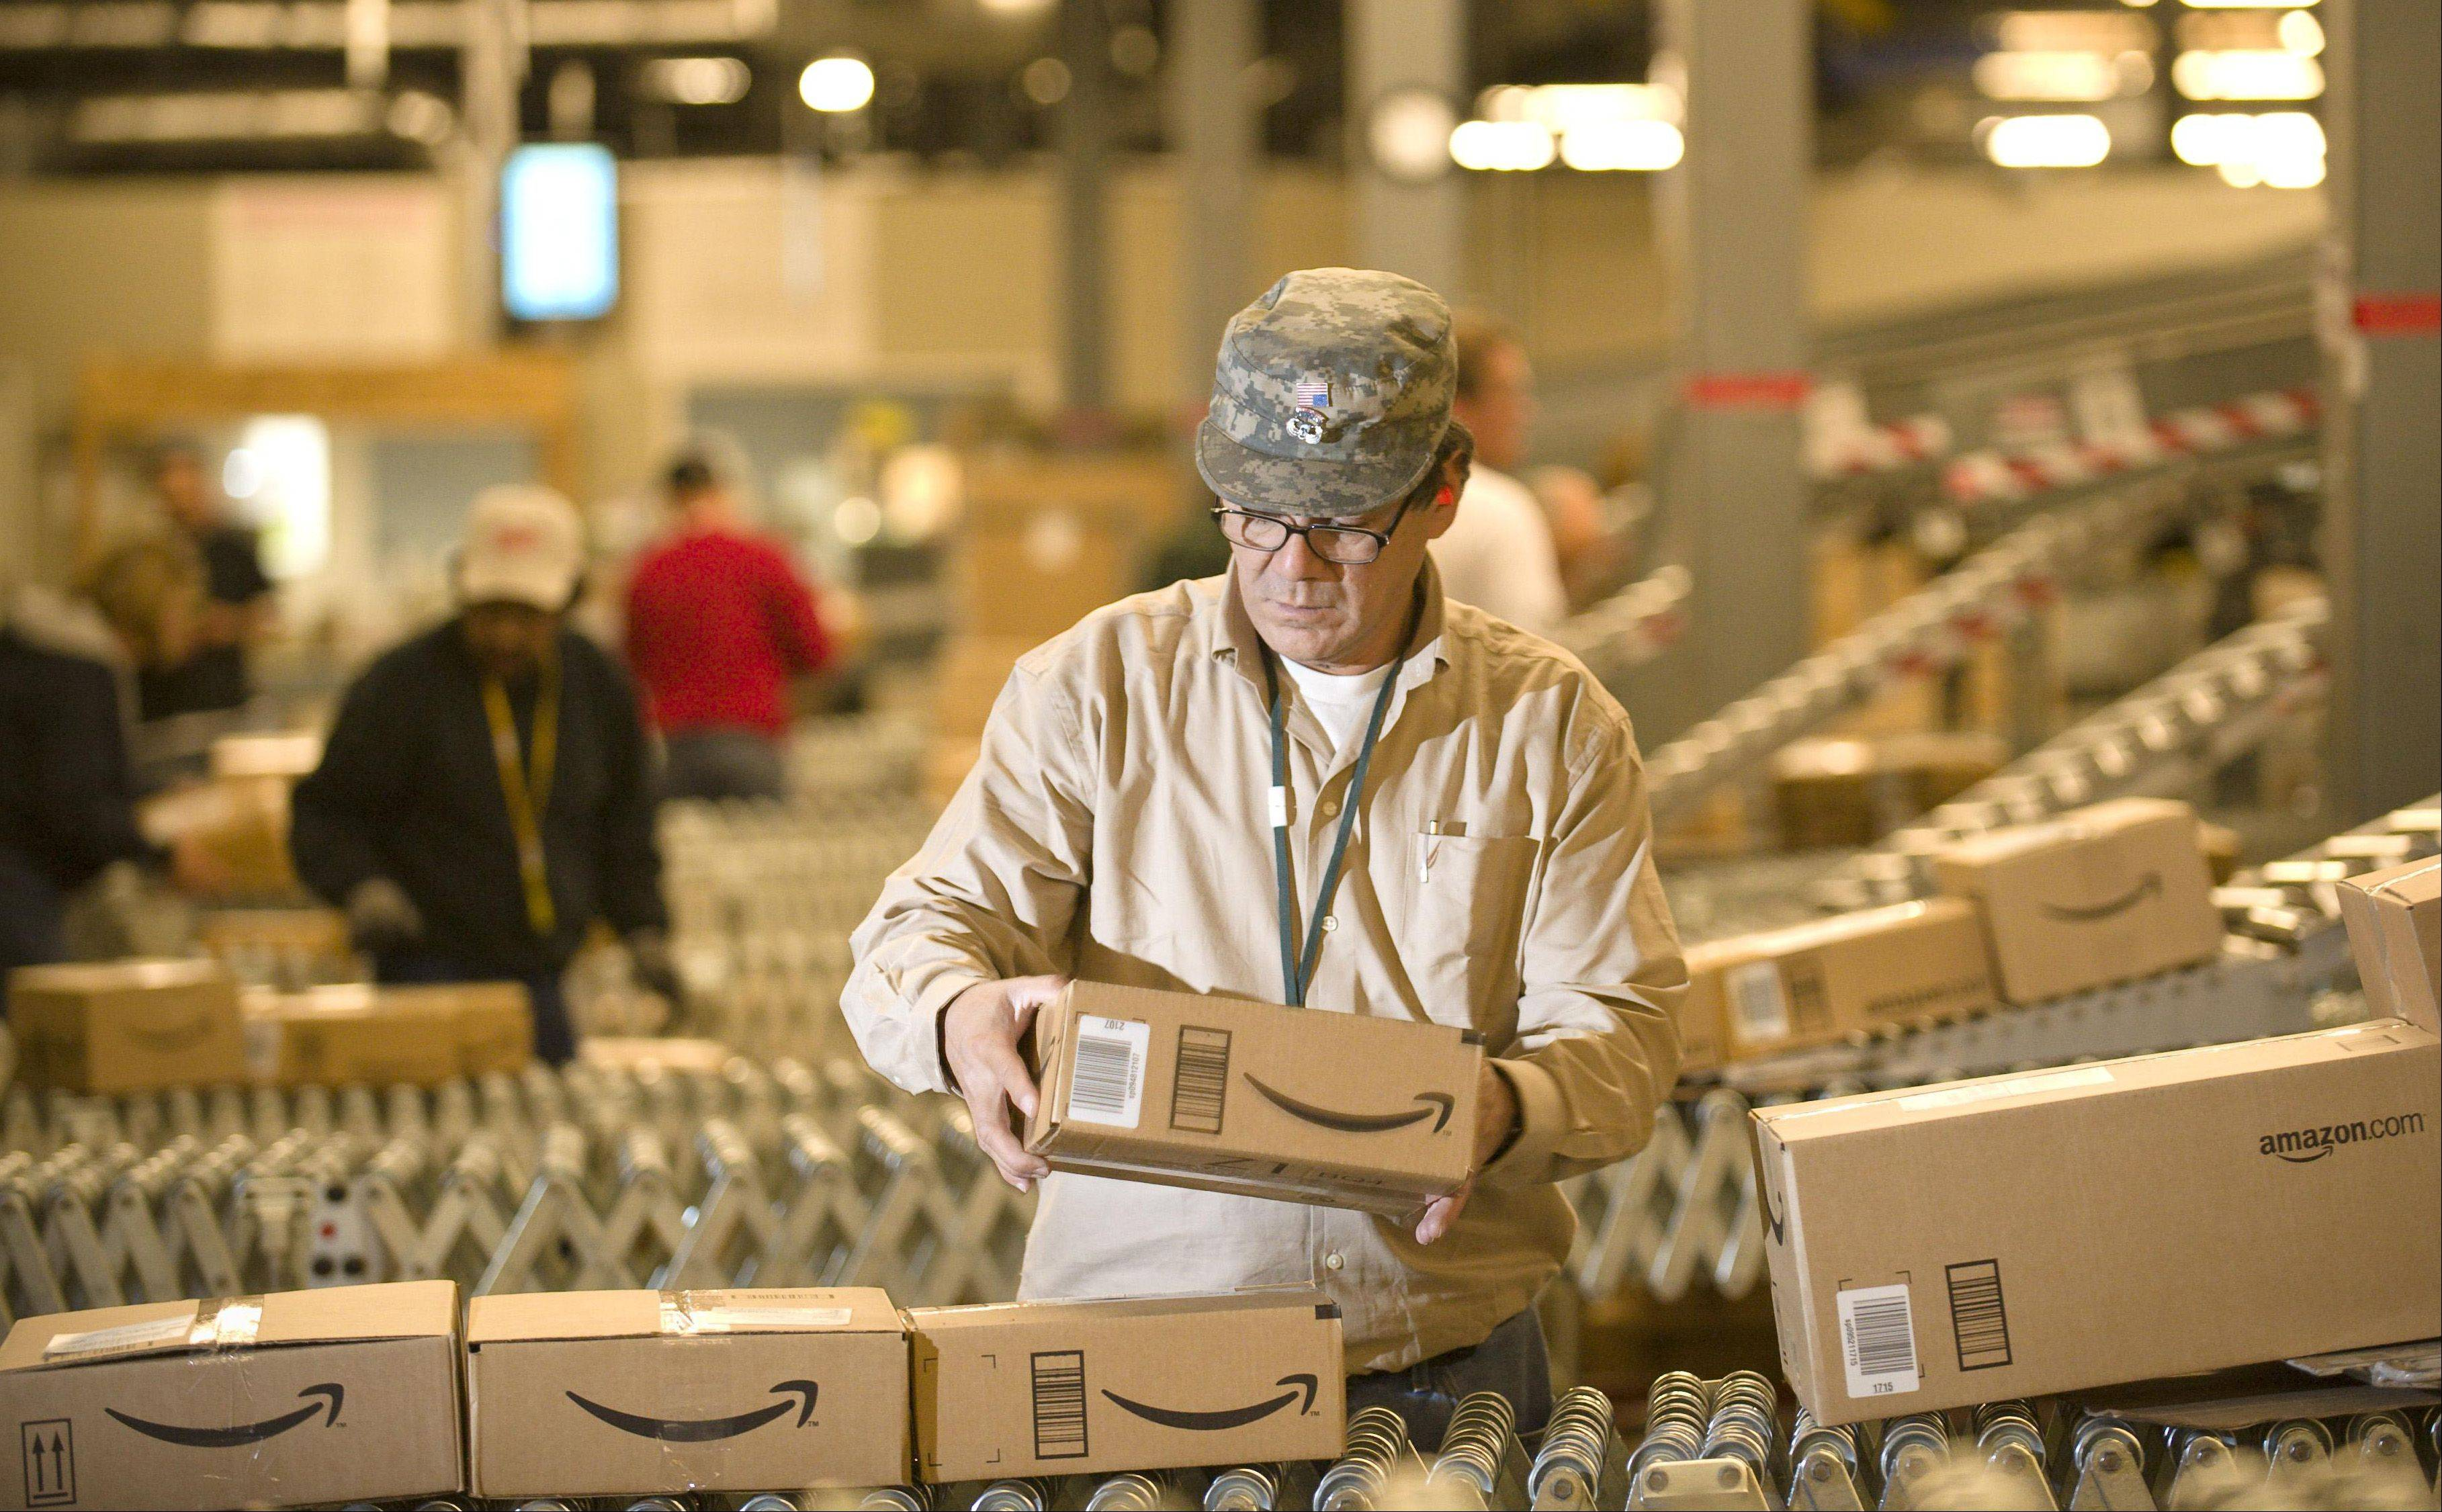 In October, Amazon announced it will open a 1-million-square-foot distribution center in Kenosha, which is just south of Milwaukee and 60 miles north of Chicago. Amazon announced this week it will be opening a second, 500,000-square-foot center in Kenosha.